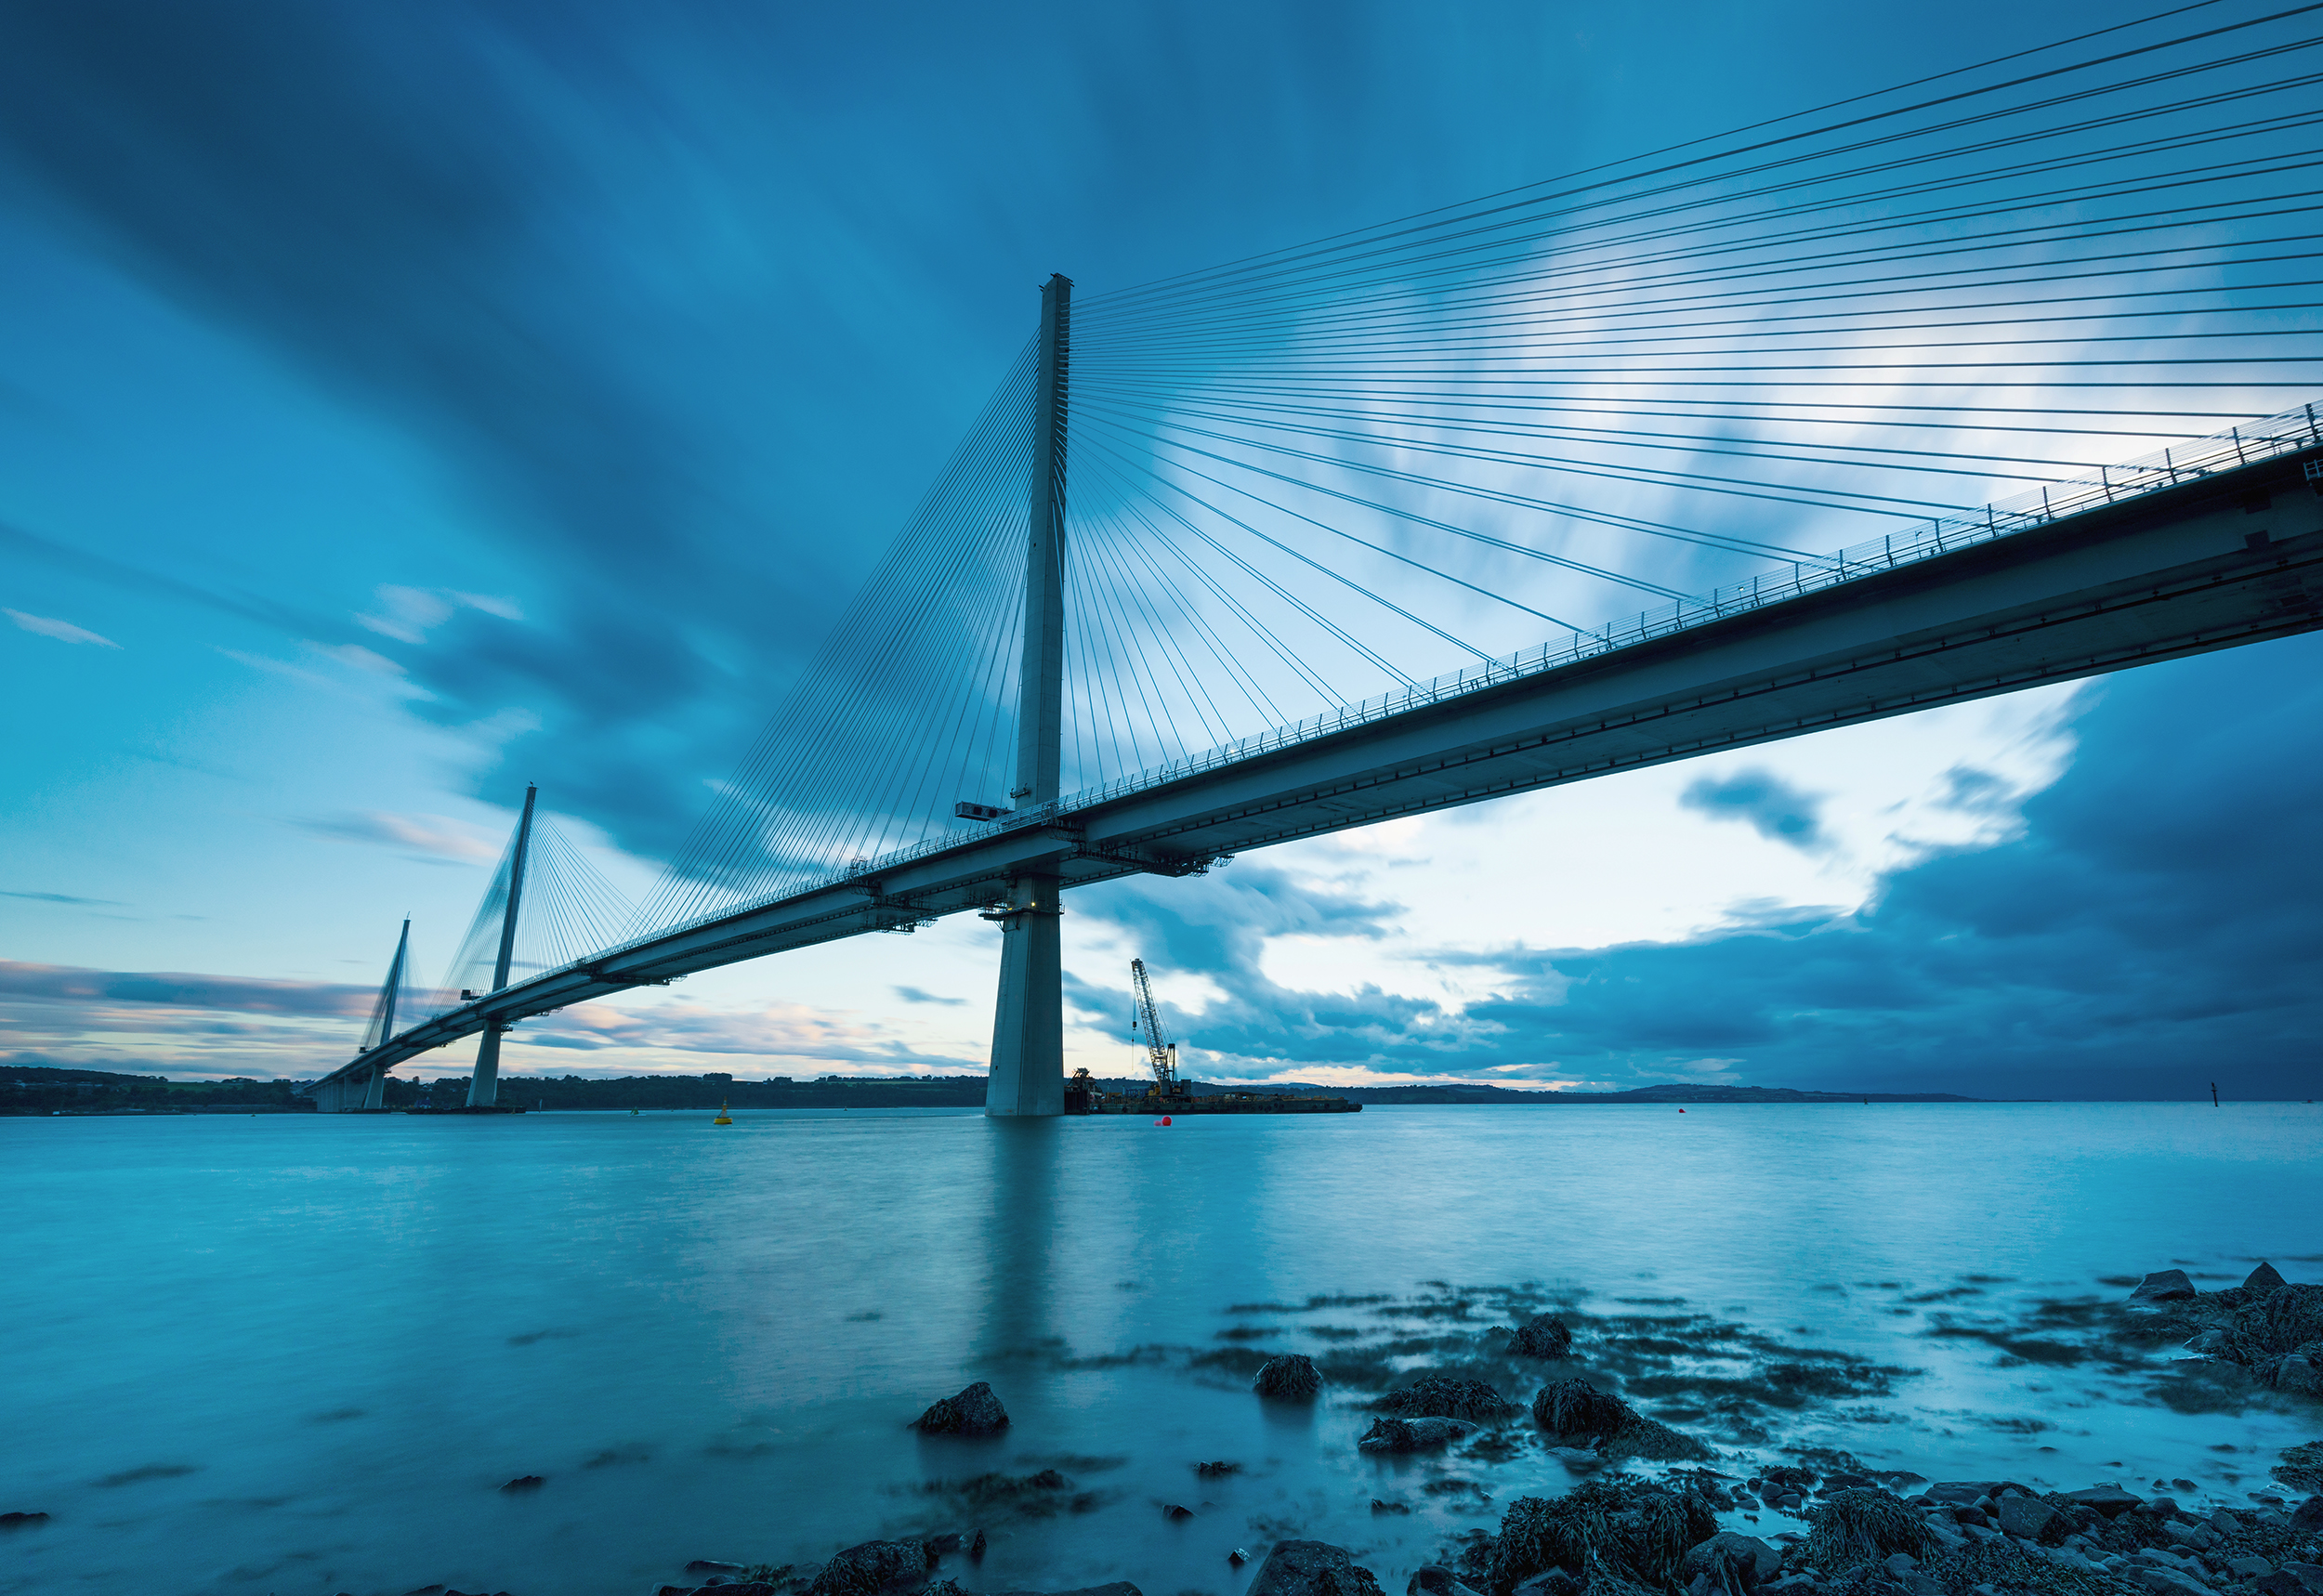 Dissing_Weitling_Queensferry_Crossing_Visit_Scotland_02_2500.jpg